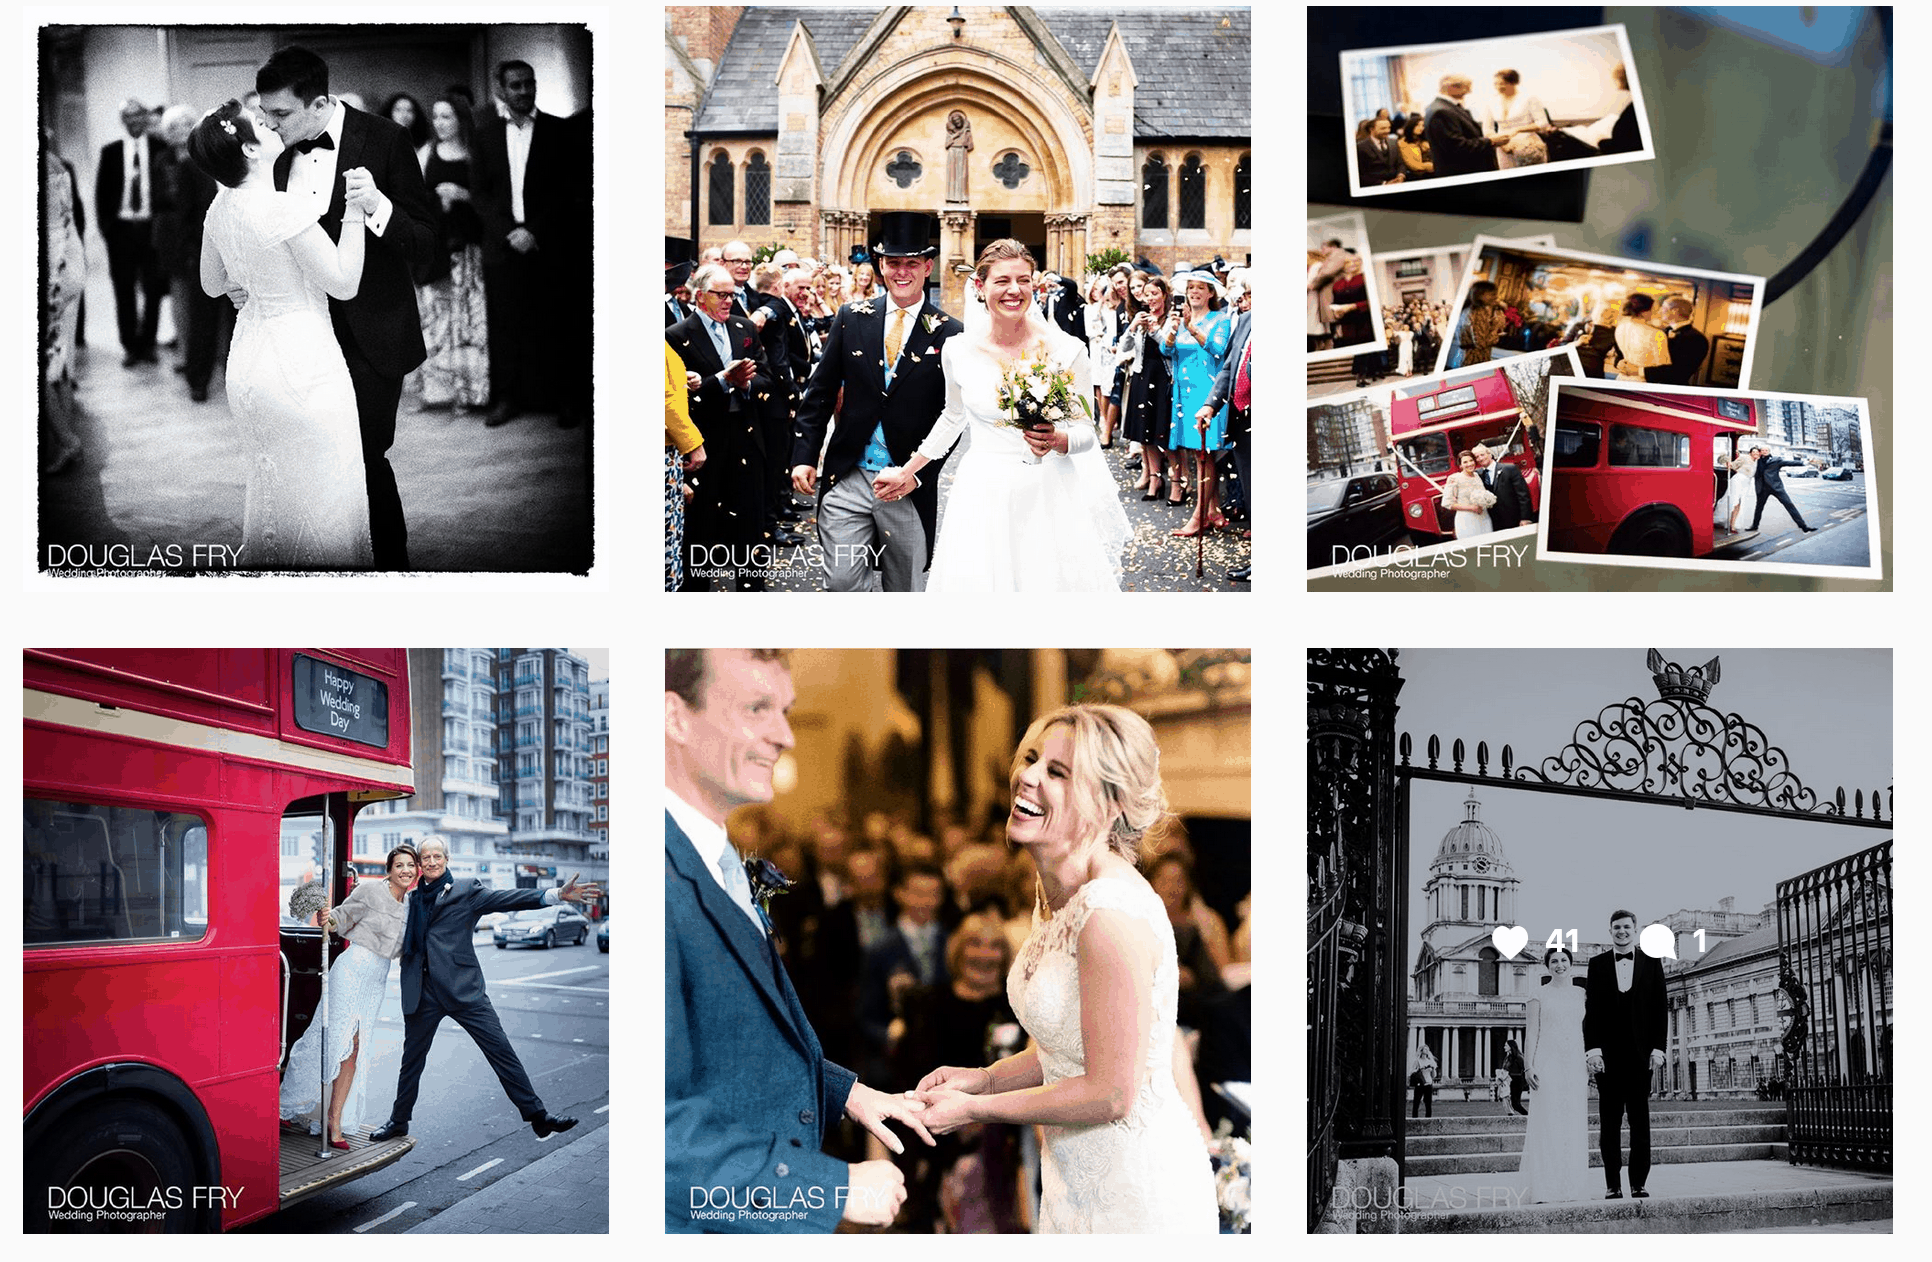 Instagram page of wedding photographs